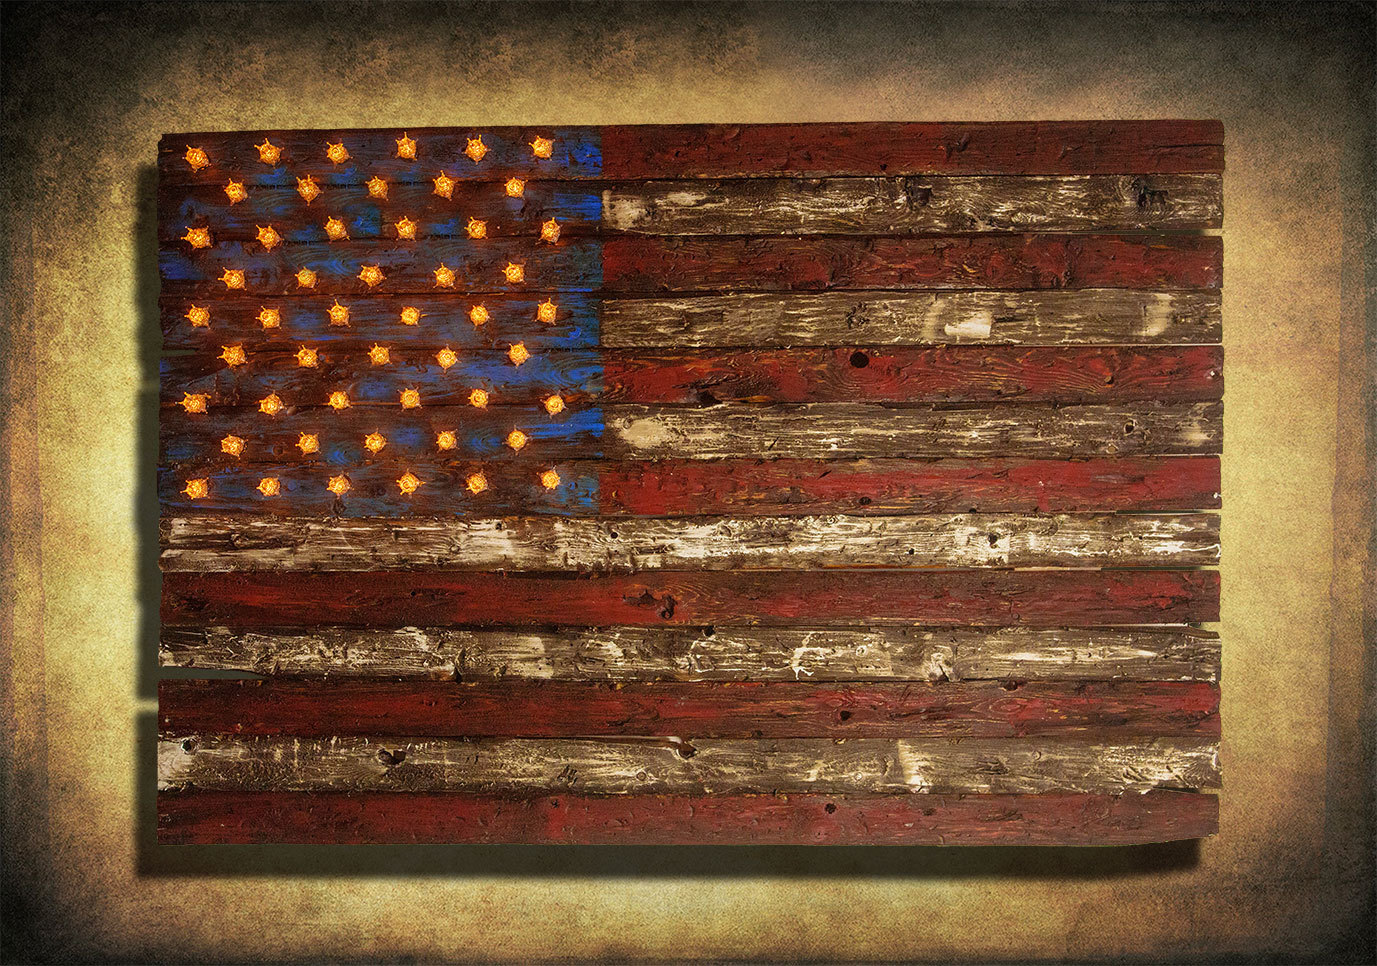 American Flag, Weathered Wood, Edison Bulb, 3D, Wooden, Vintage, Art